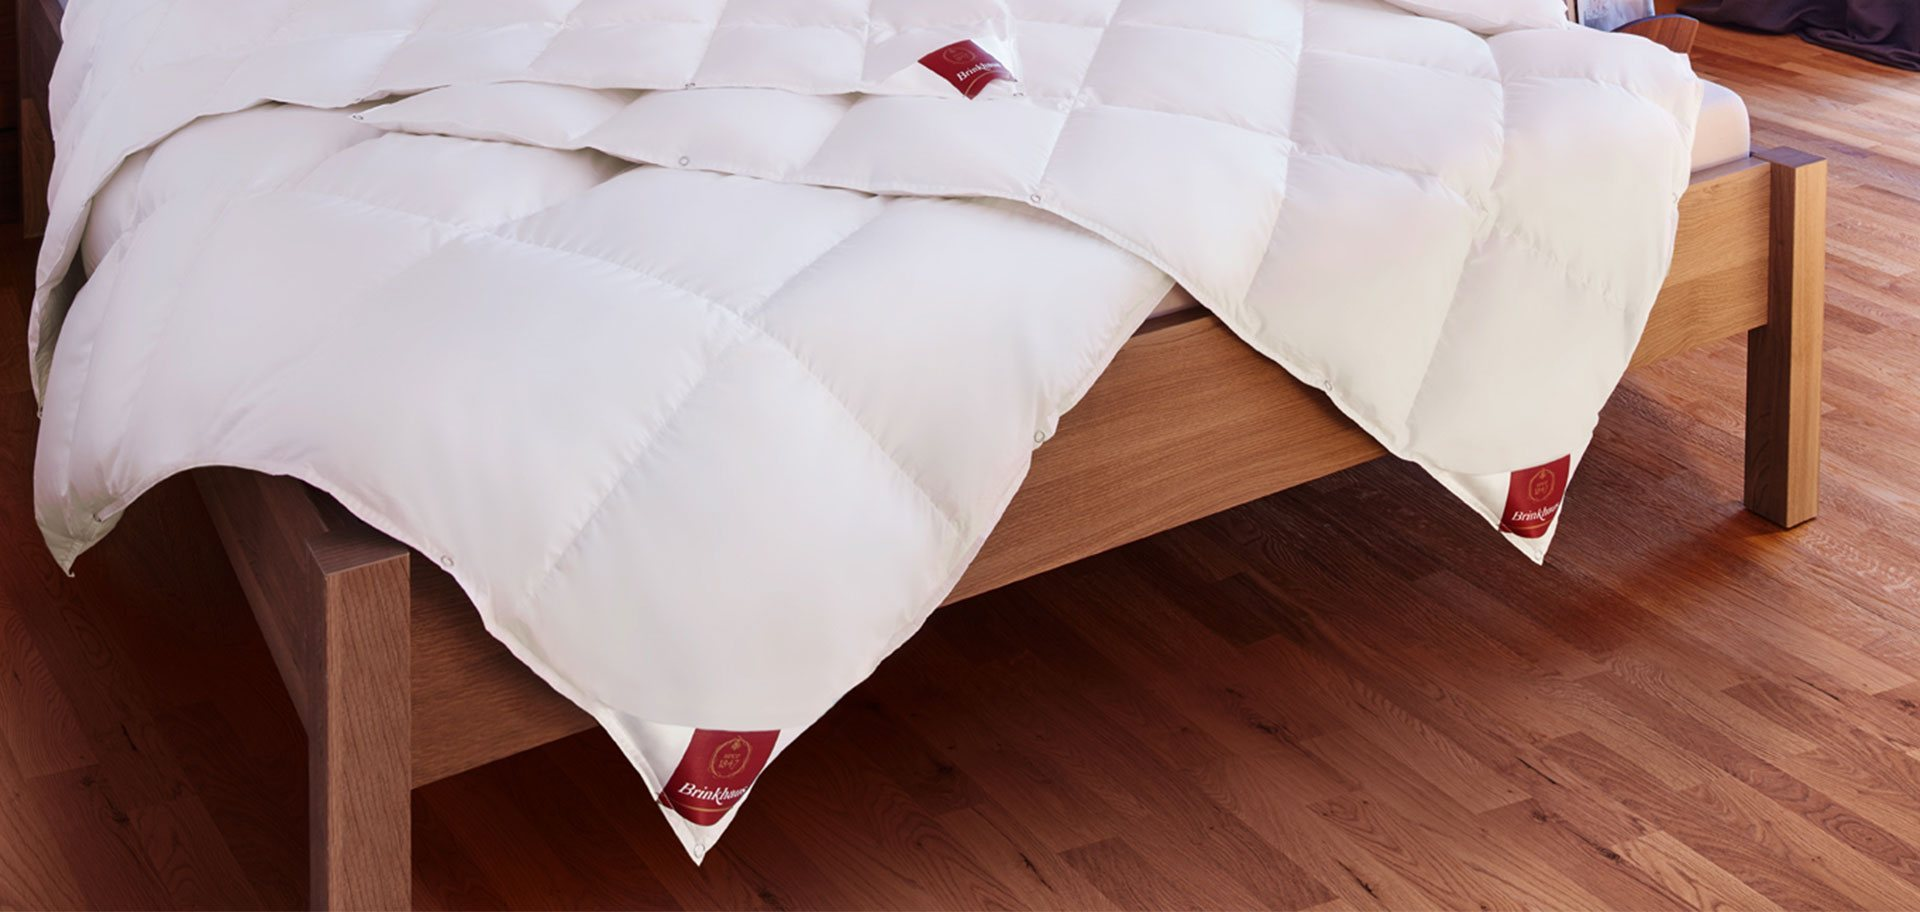 Save 20% across the entire Brinkhaus Bedding range